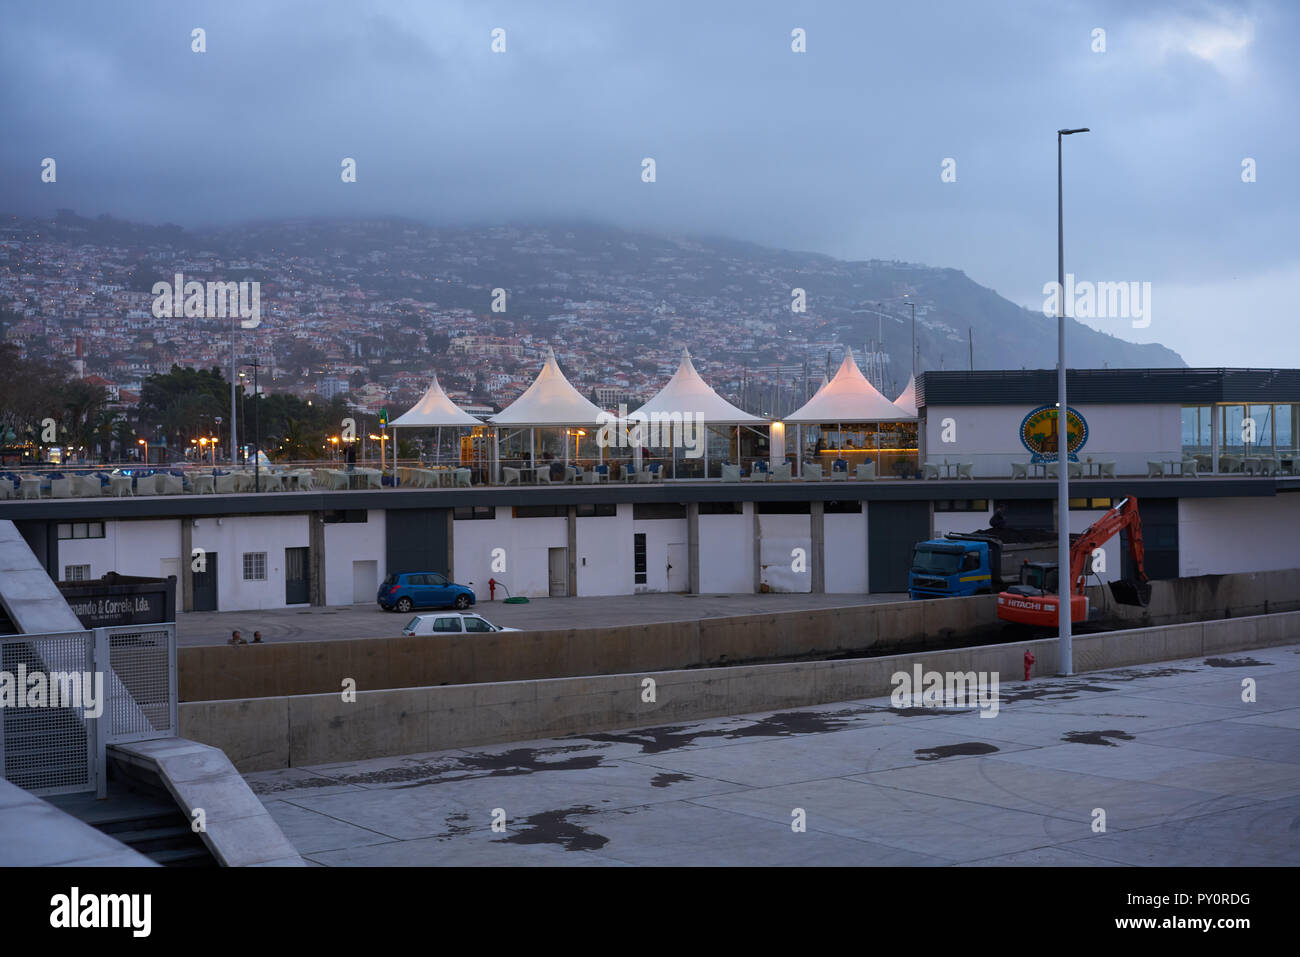 View from the promenade of a restaurant and the city of Funchal in Madeira - Stock Image